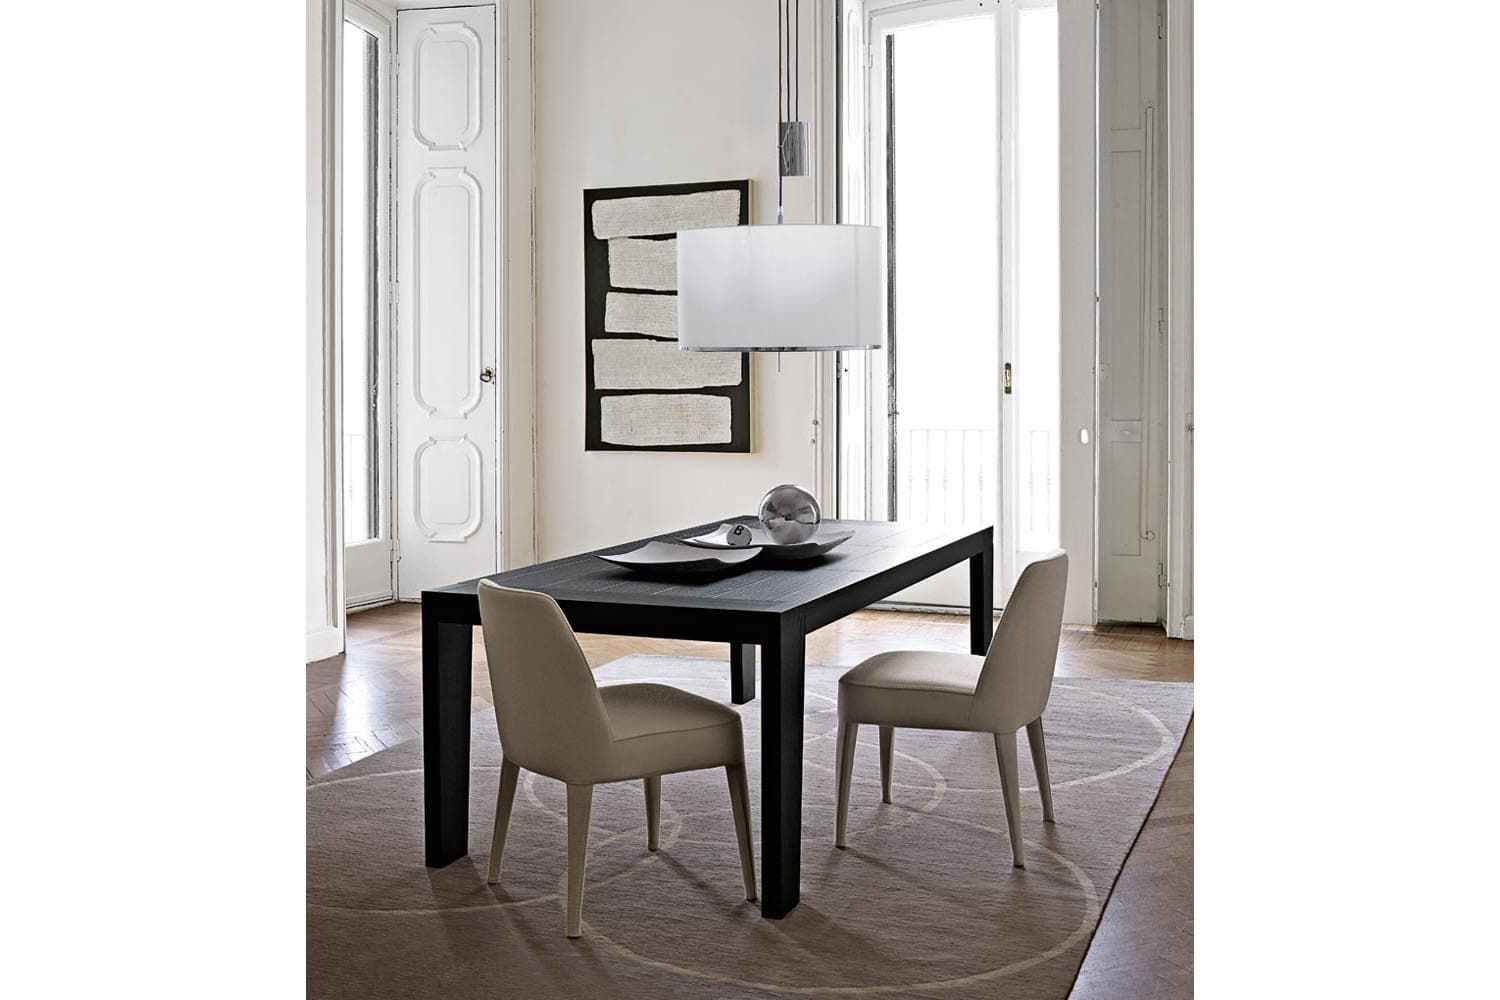 Tavolo Maxalto ~ Omero extension table by antonio citterio for maxalto maxalto